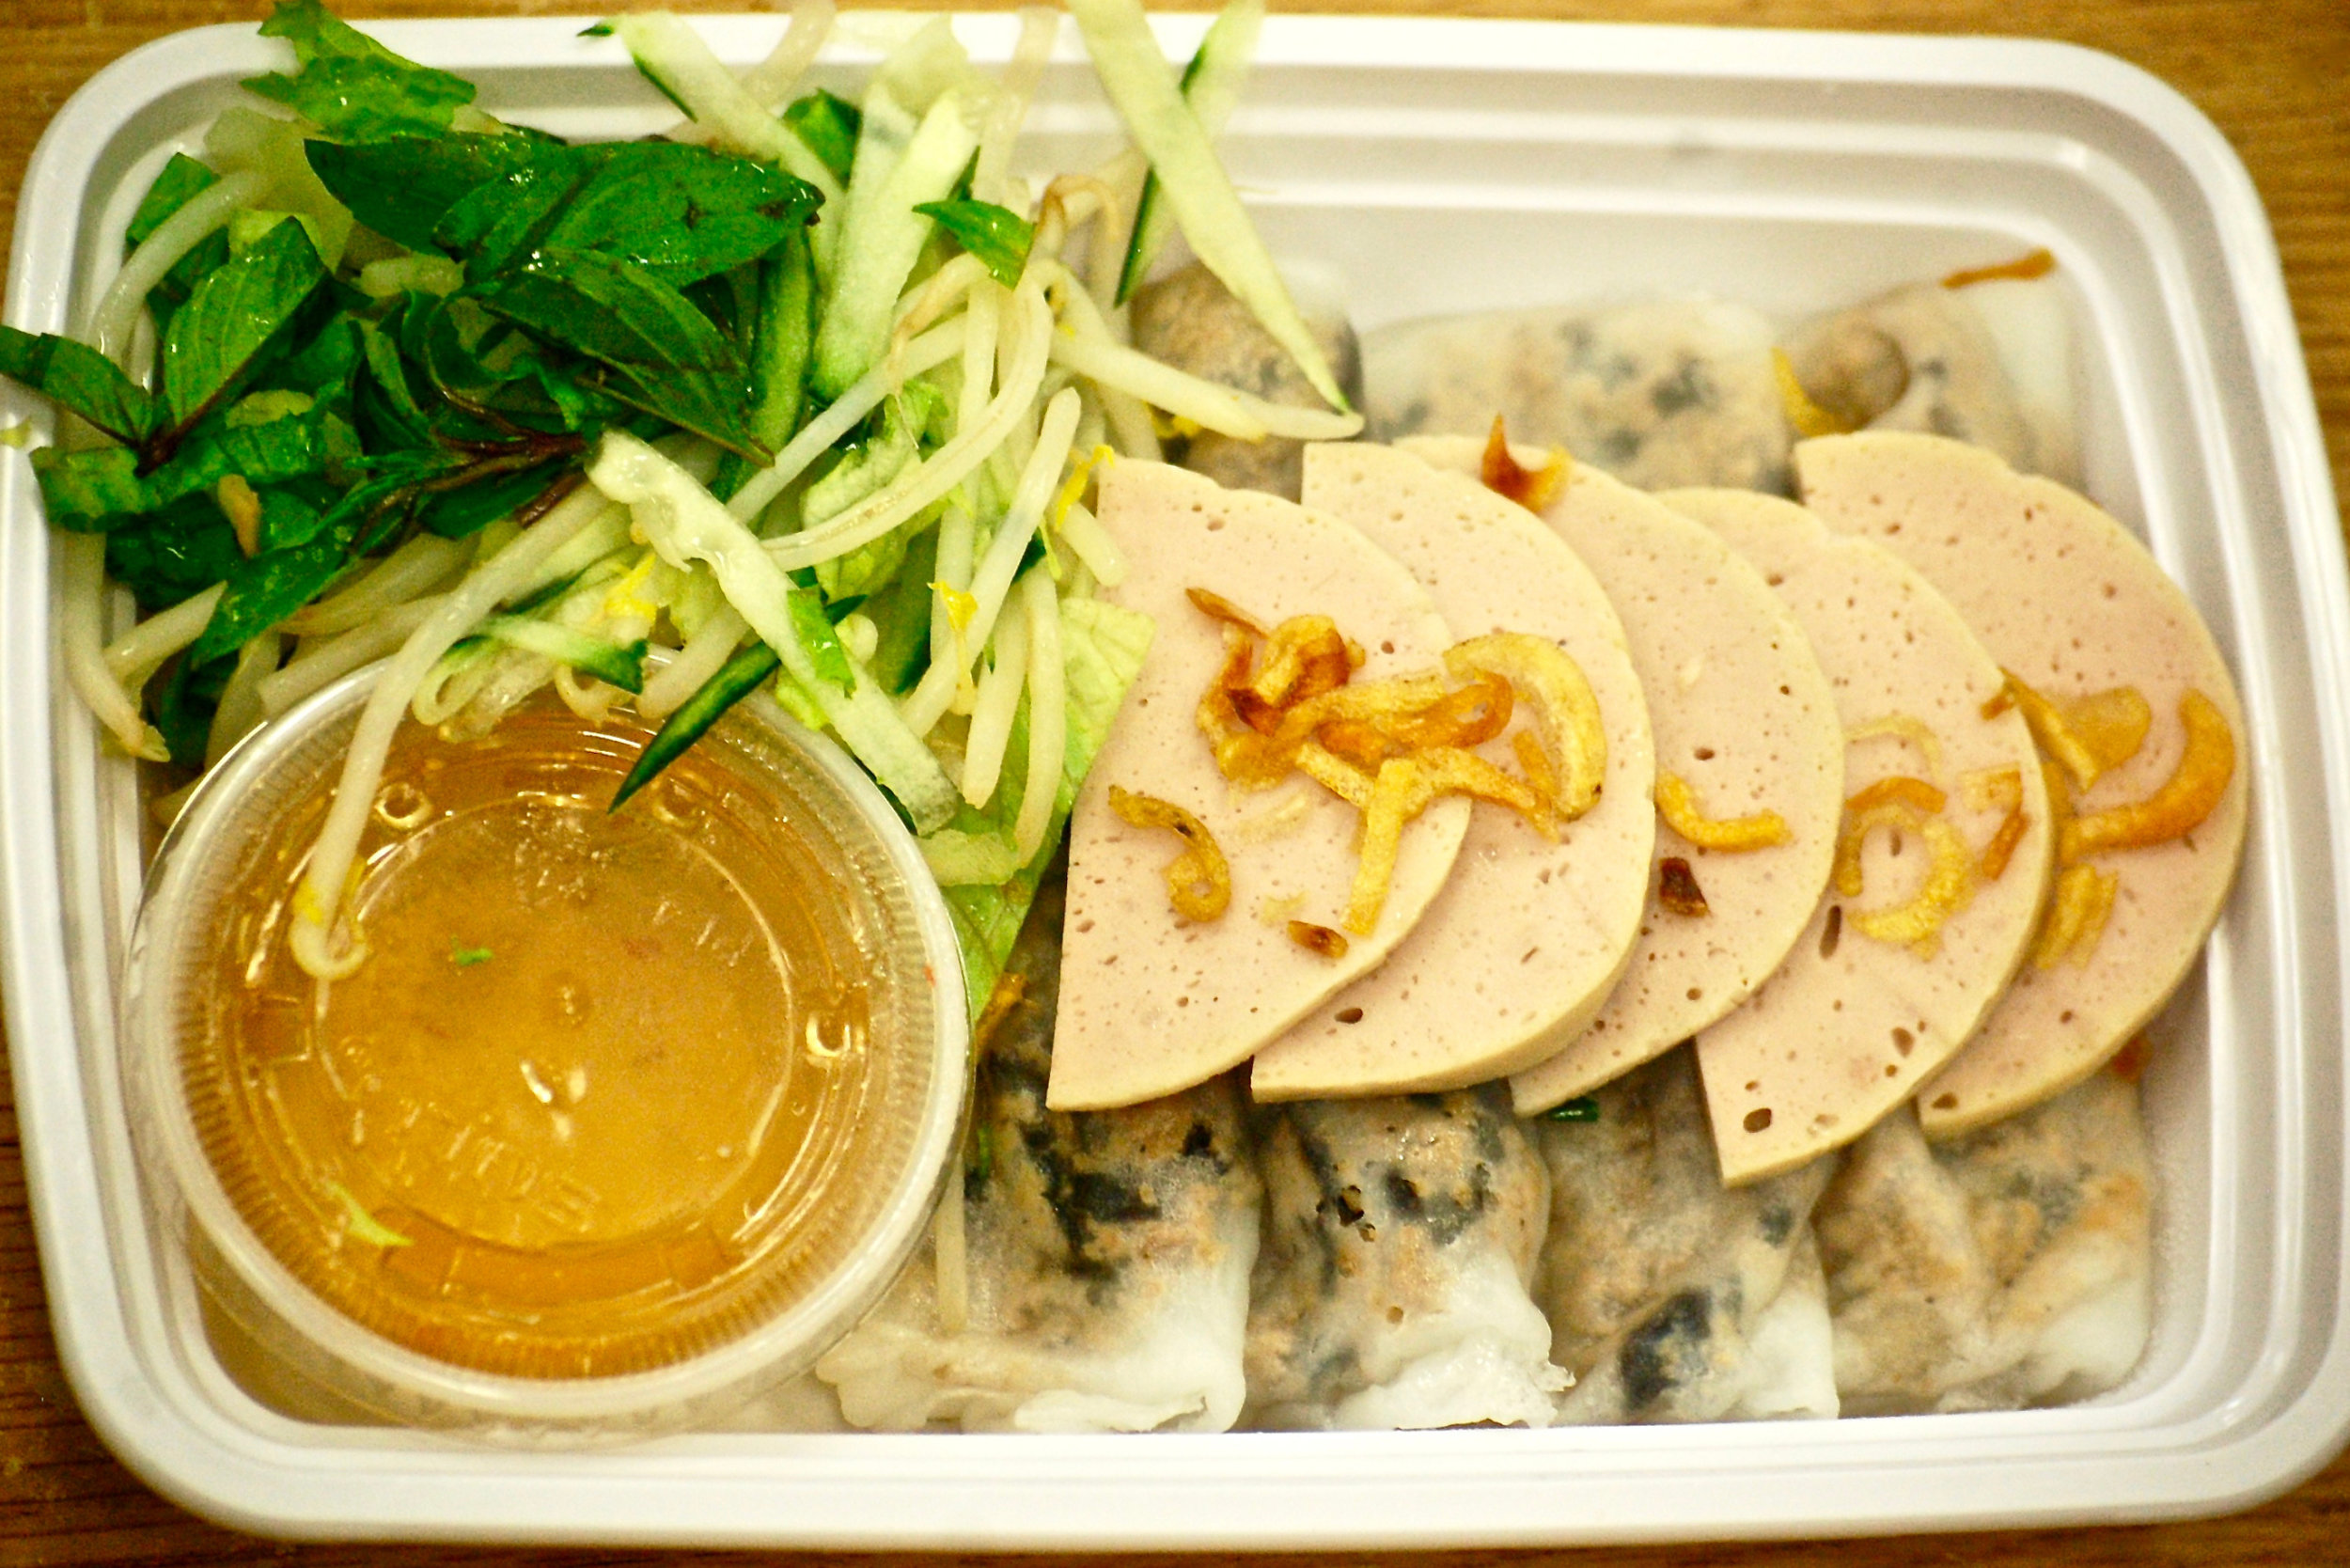 Pork and Spring Roll Lunchbox